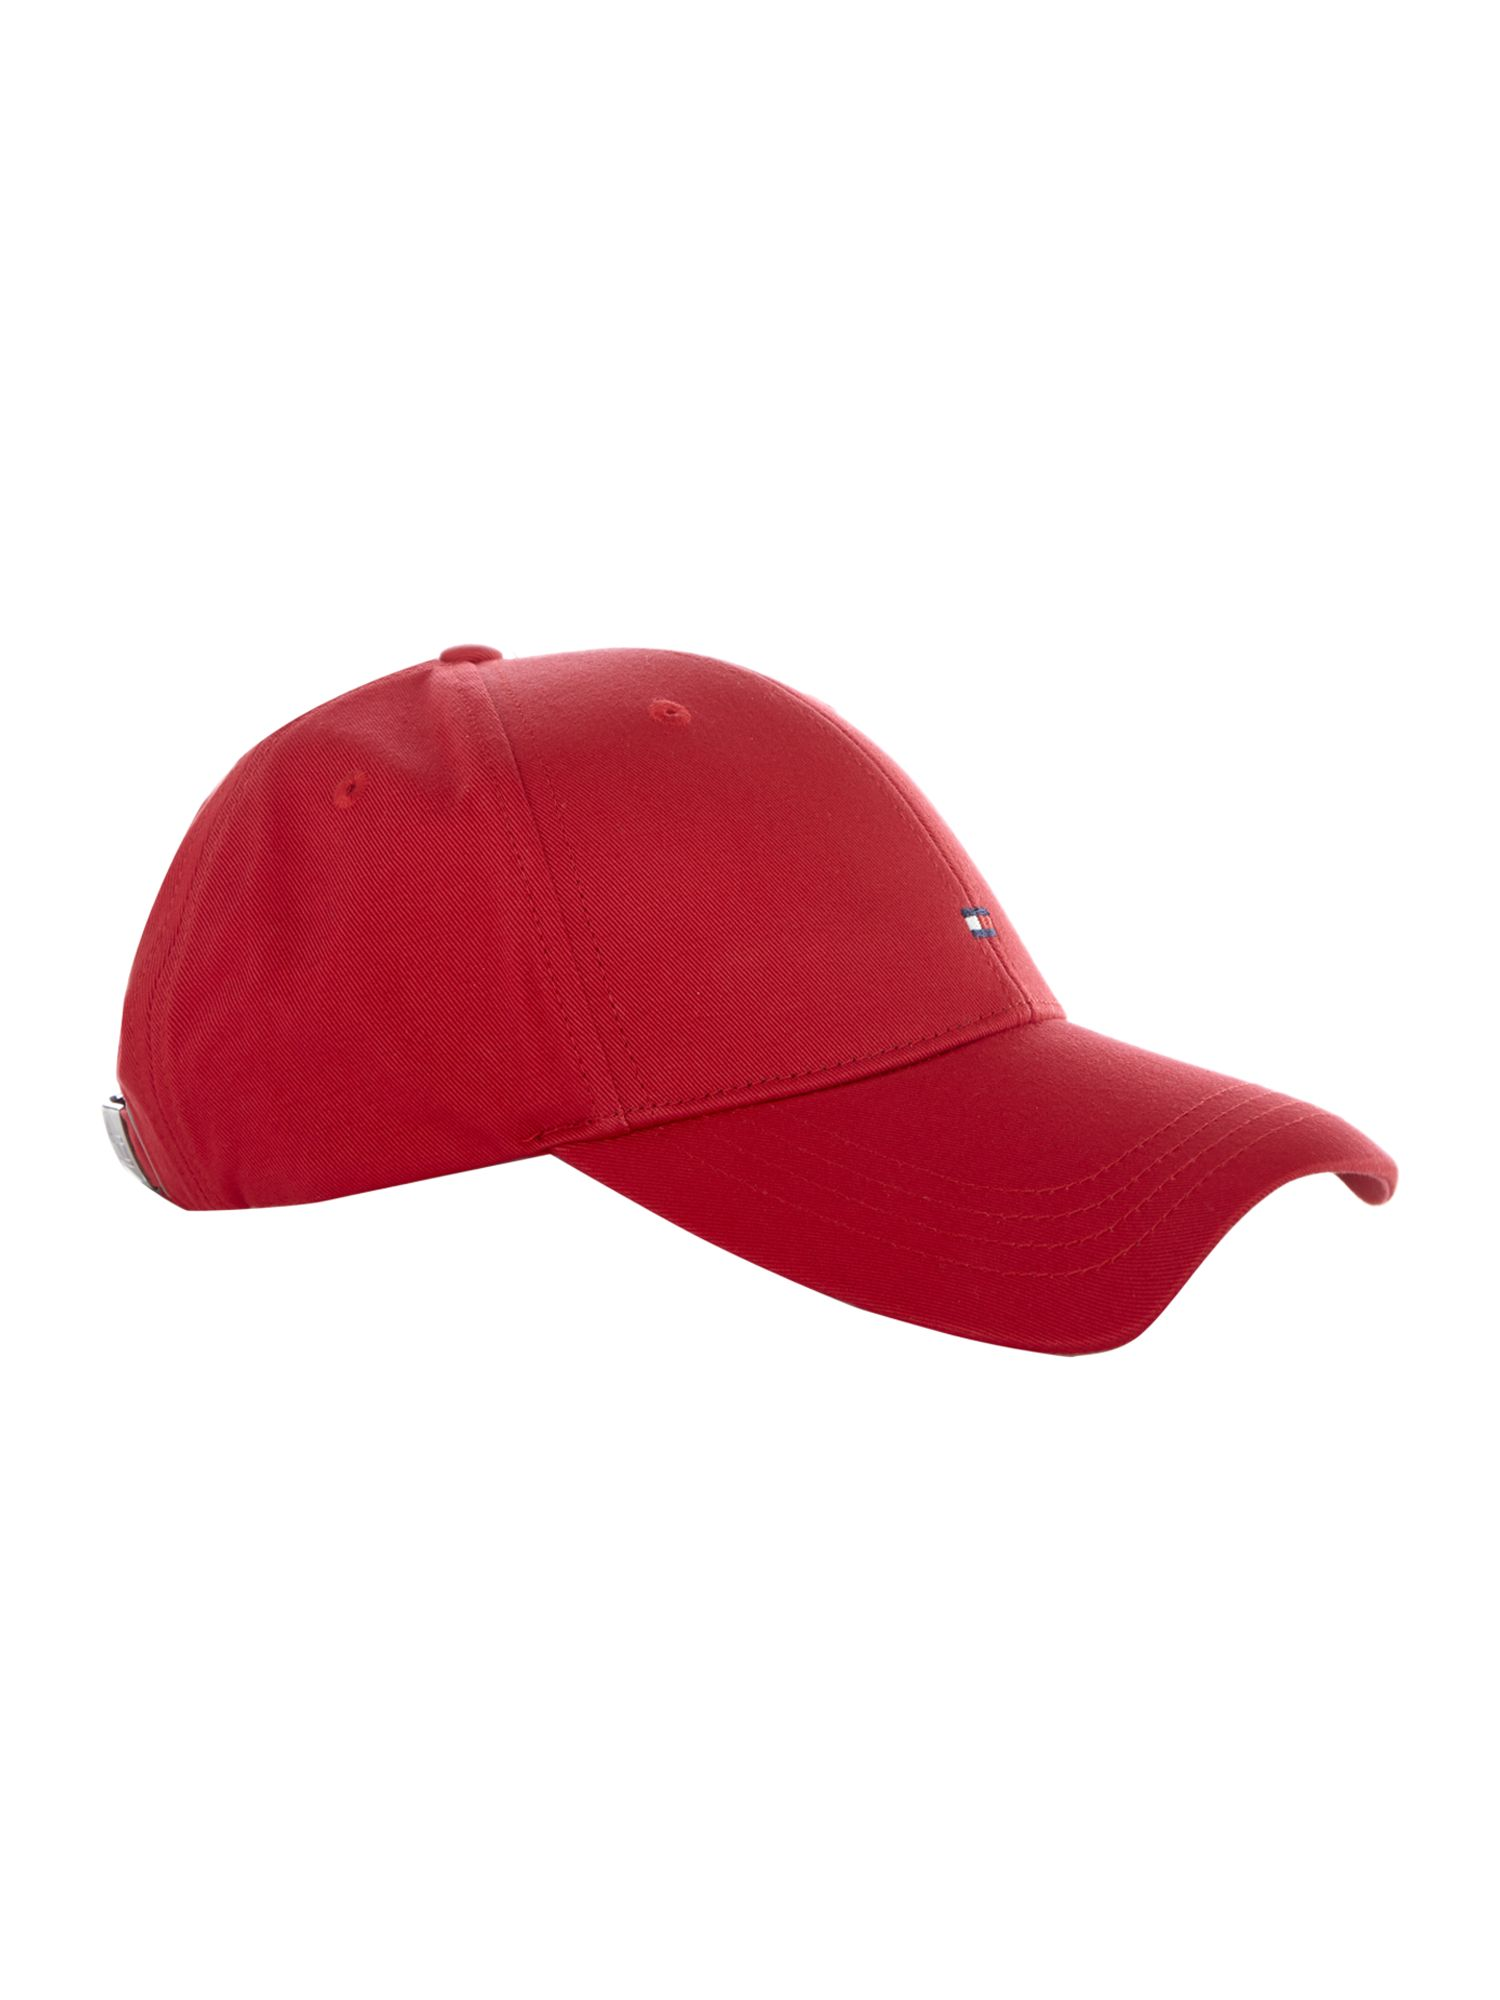 Tommy Hilfiger Basic logo cap Red